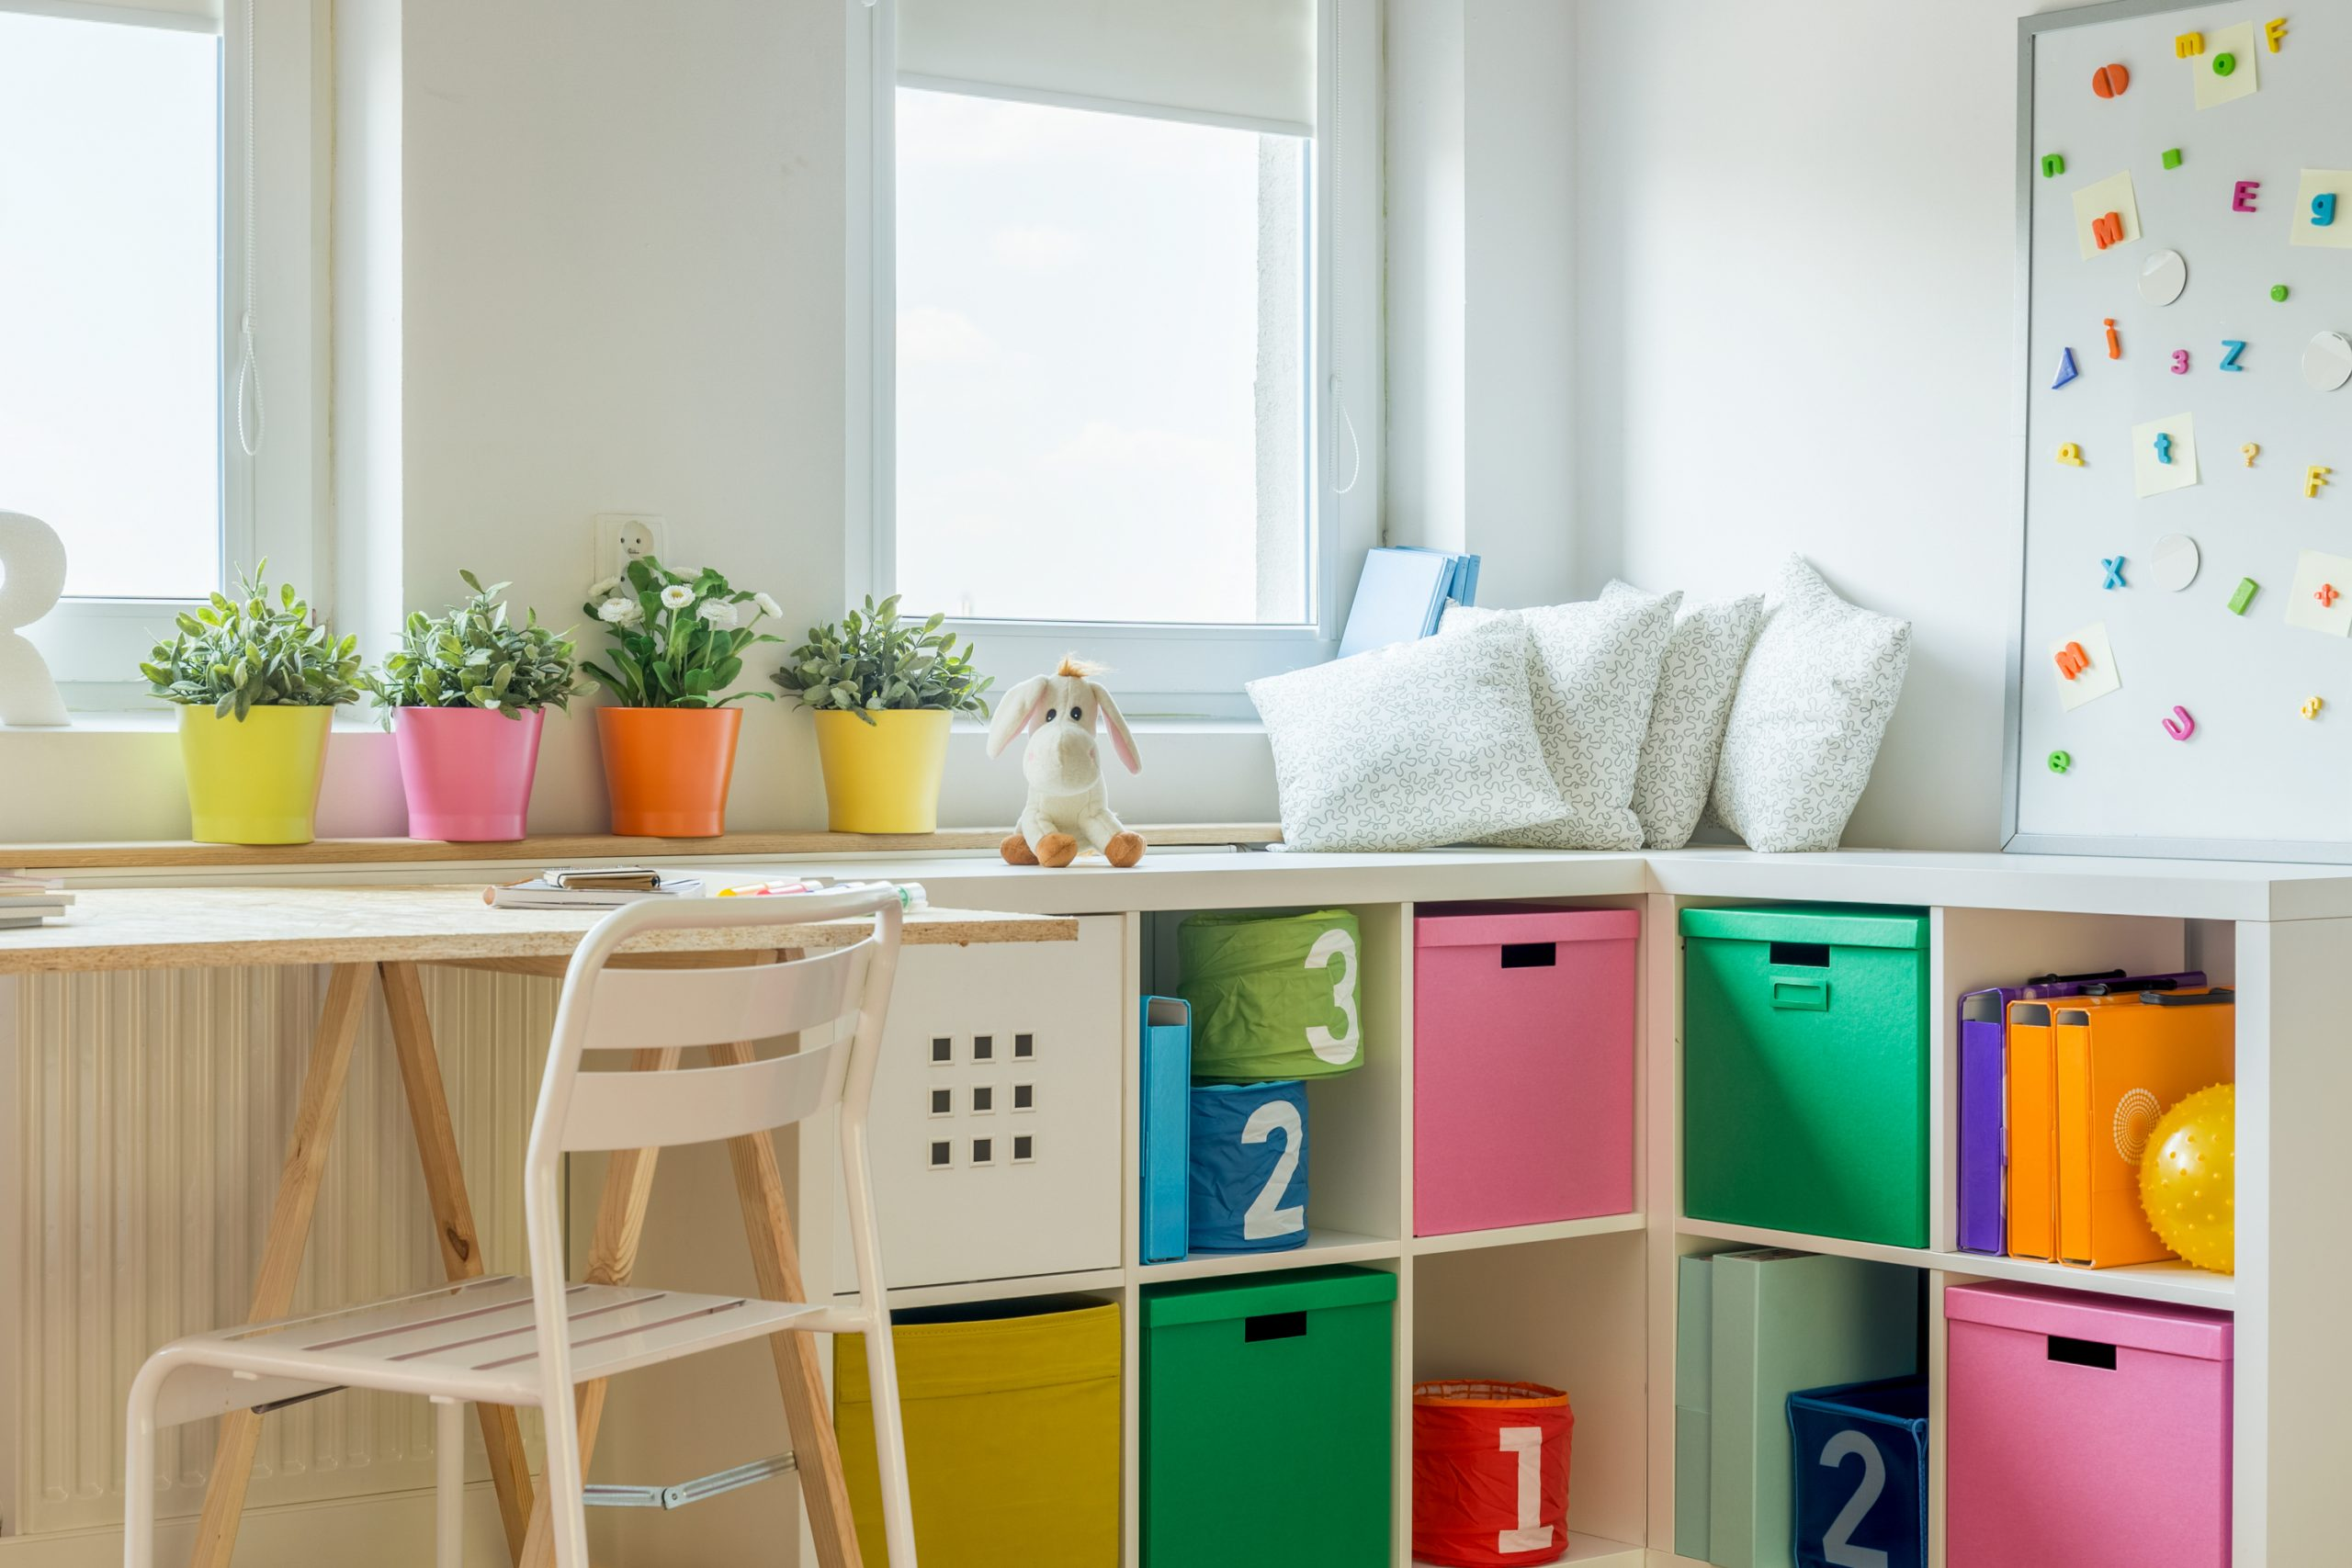 Are you sick of looking at your child's messy room? We have ways to help you organize kids rooms! We even have ideas to organize kids rooms on a budget.